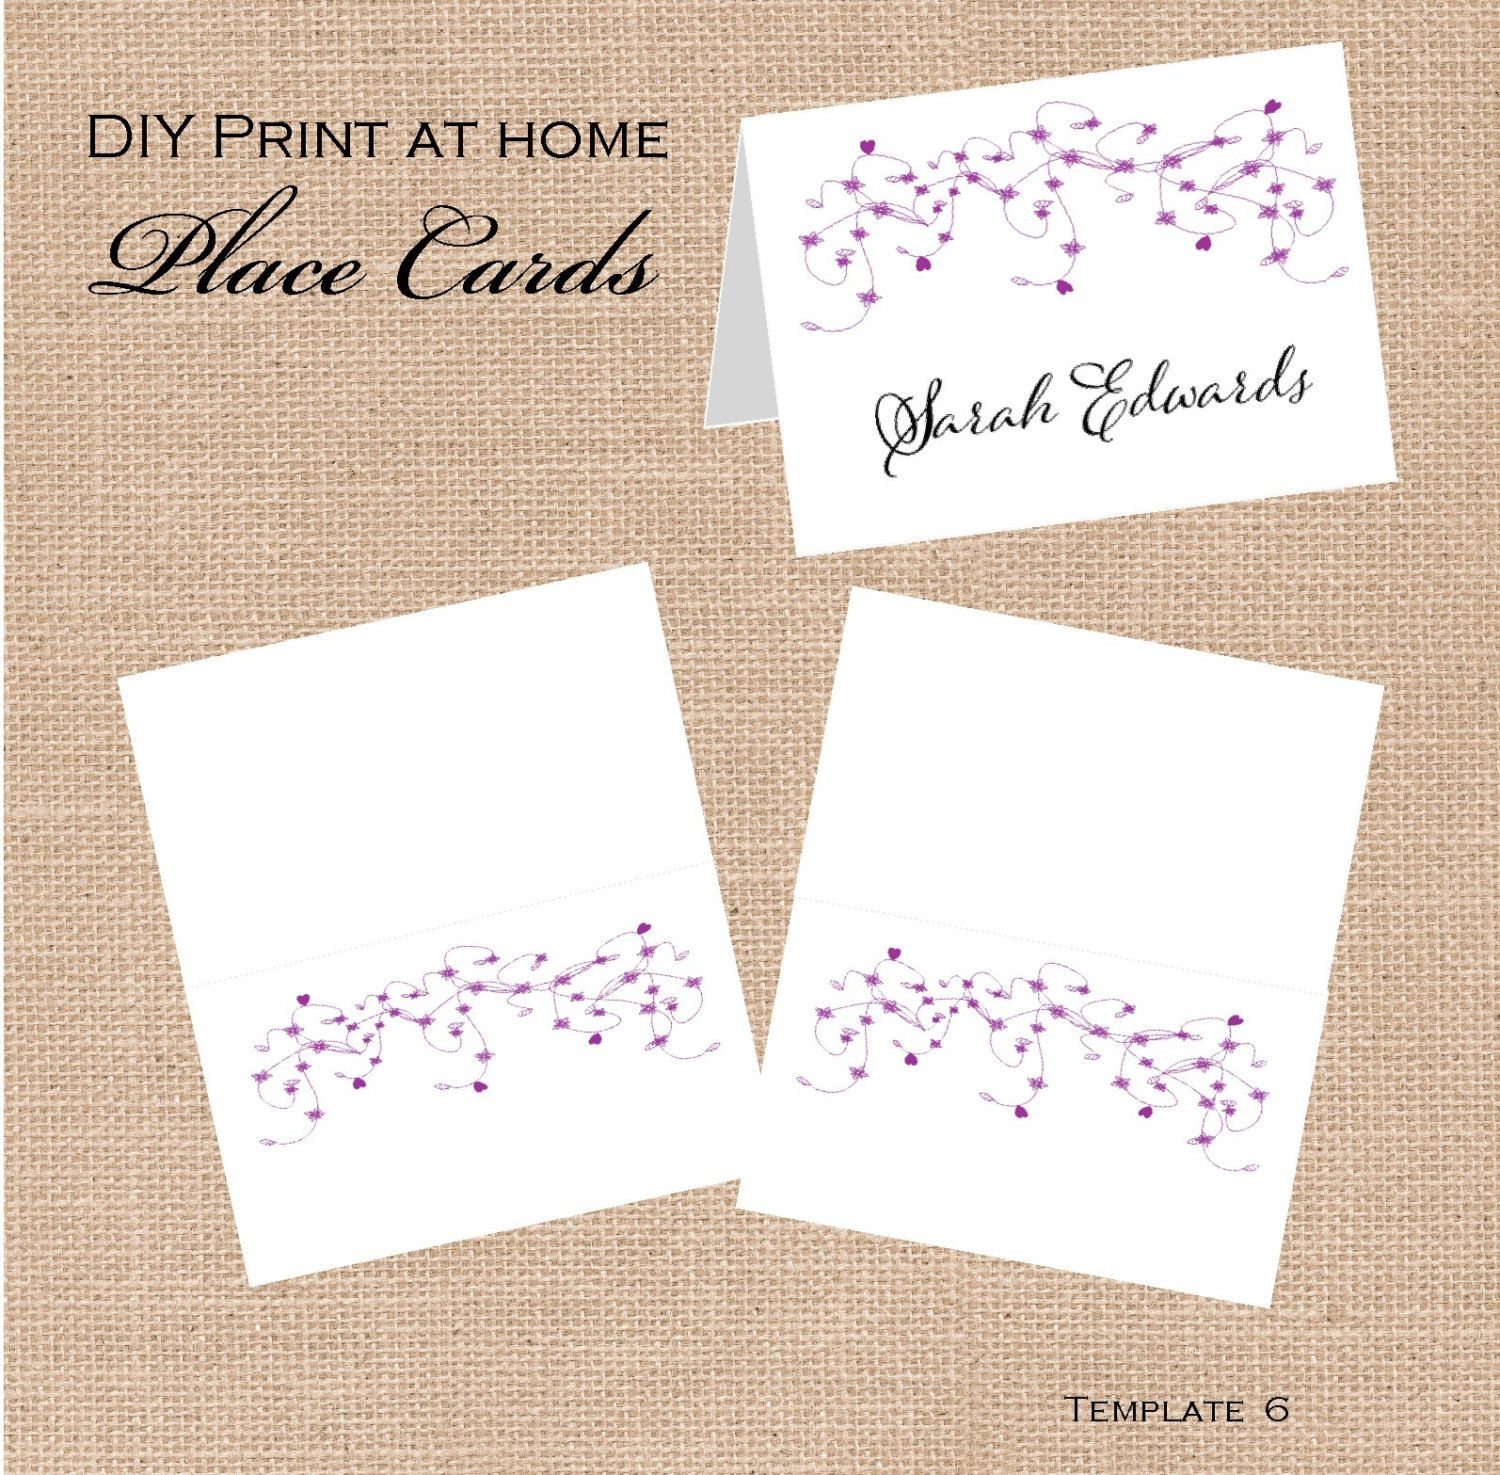 Printable Wedding Place Card Templates - DIY Print at home products ...